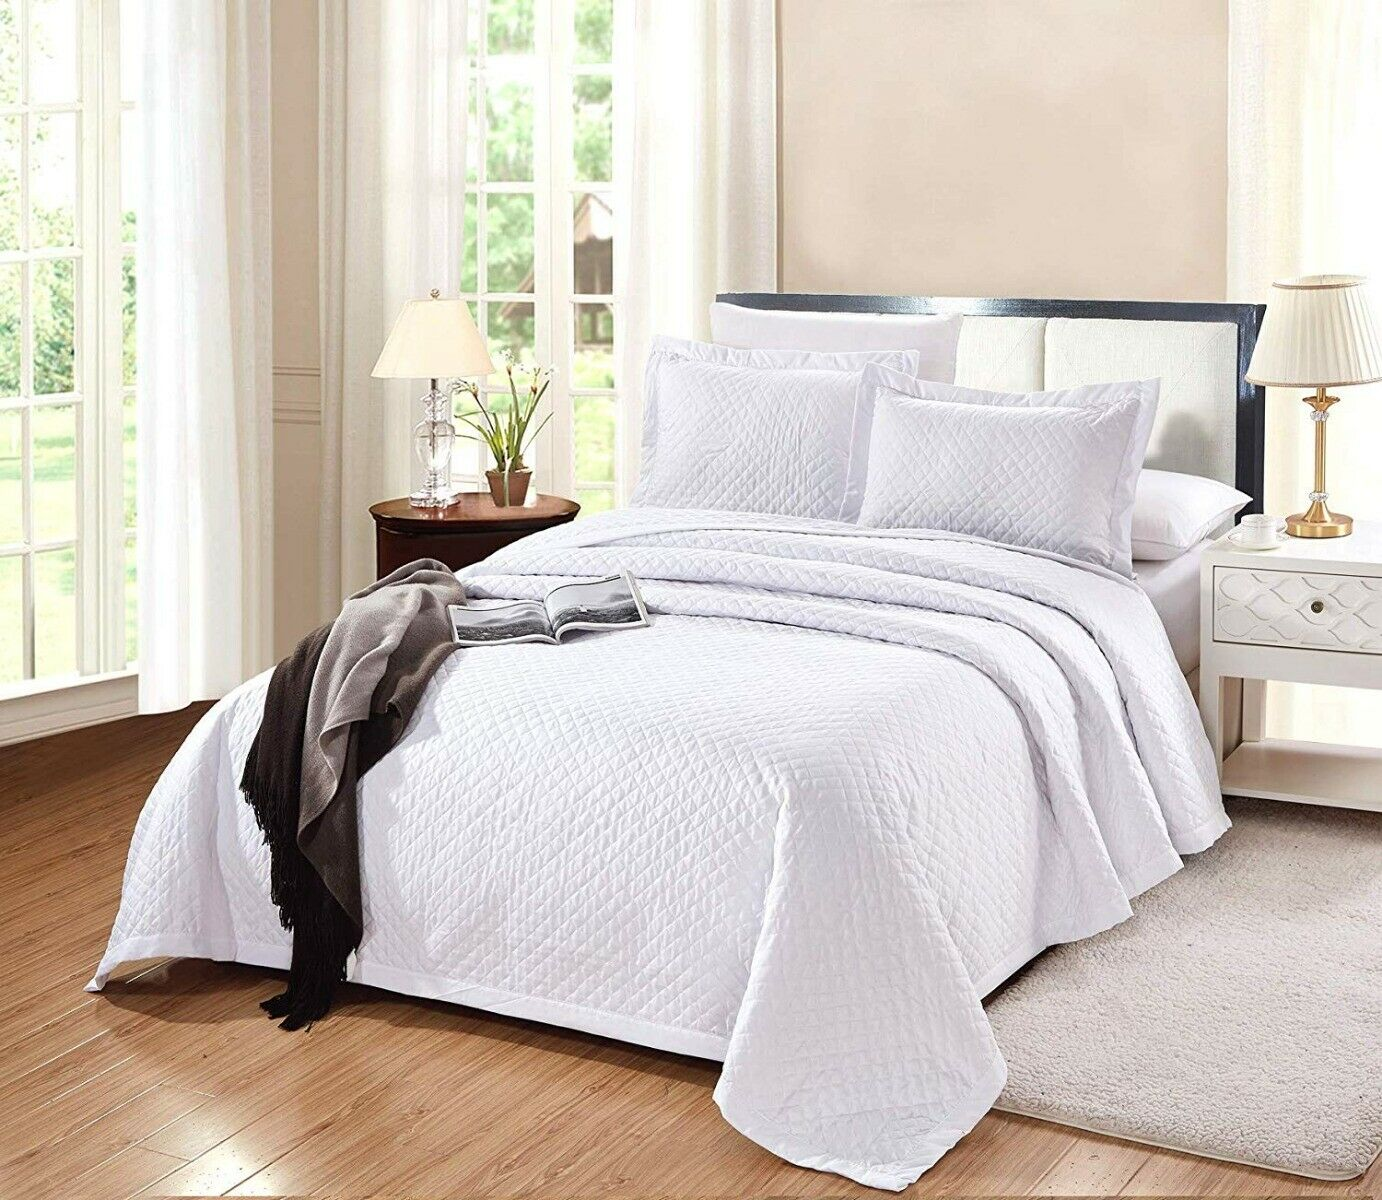 3 PC King Size Naples Quilt Solid White Soft Microfiber Coverlet Bedspread